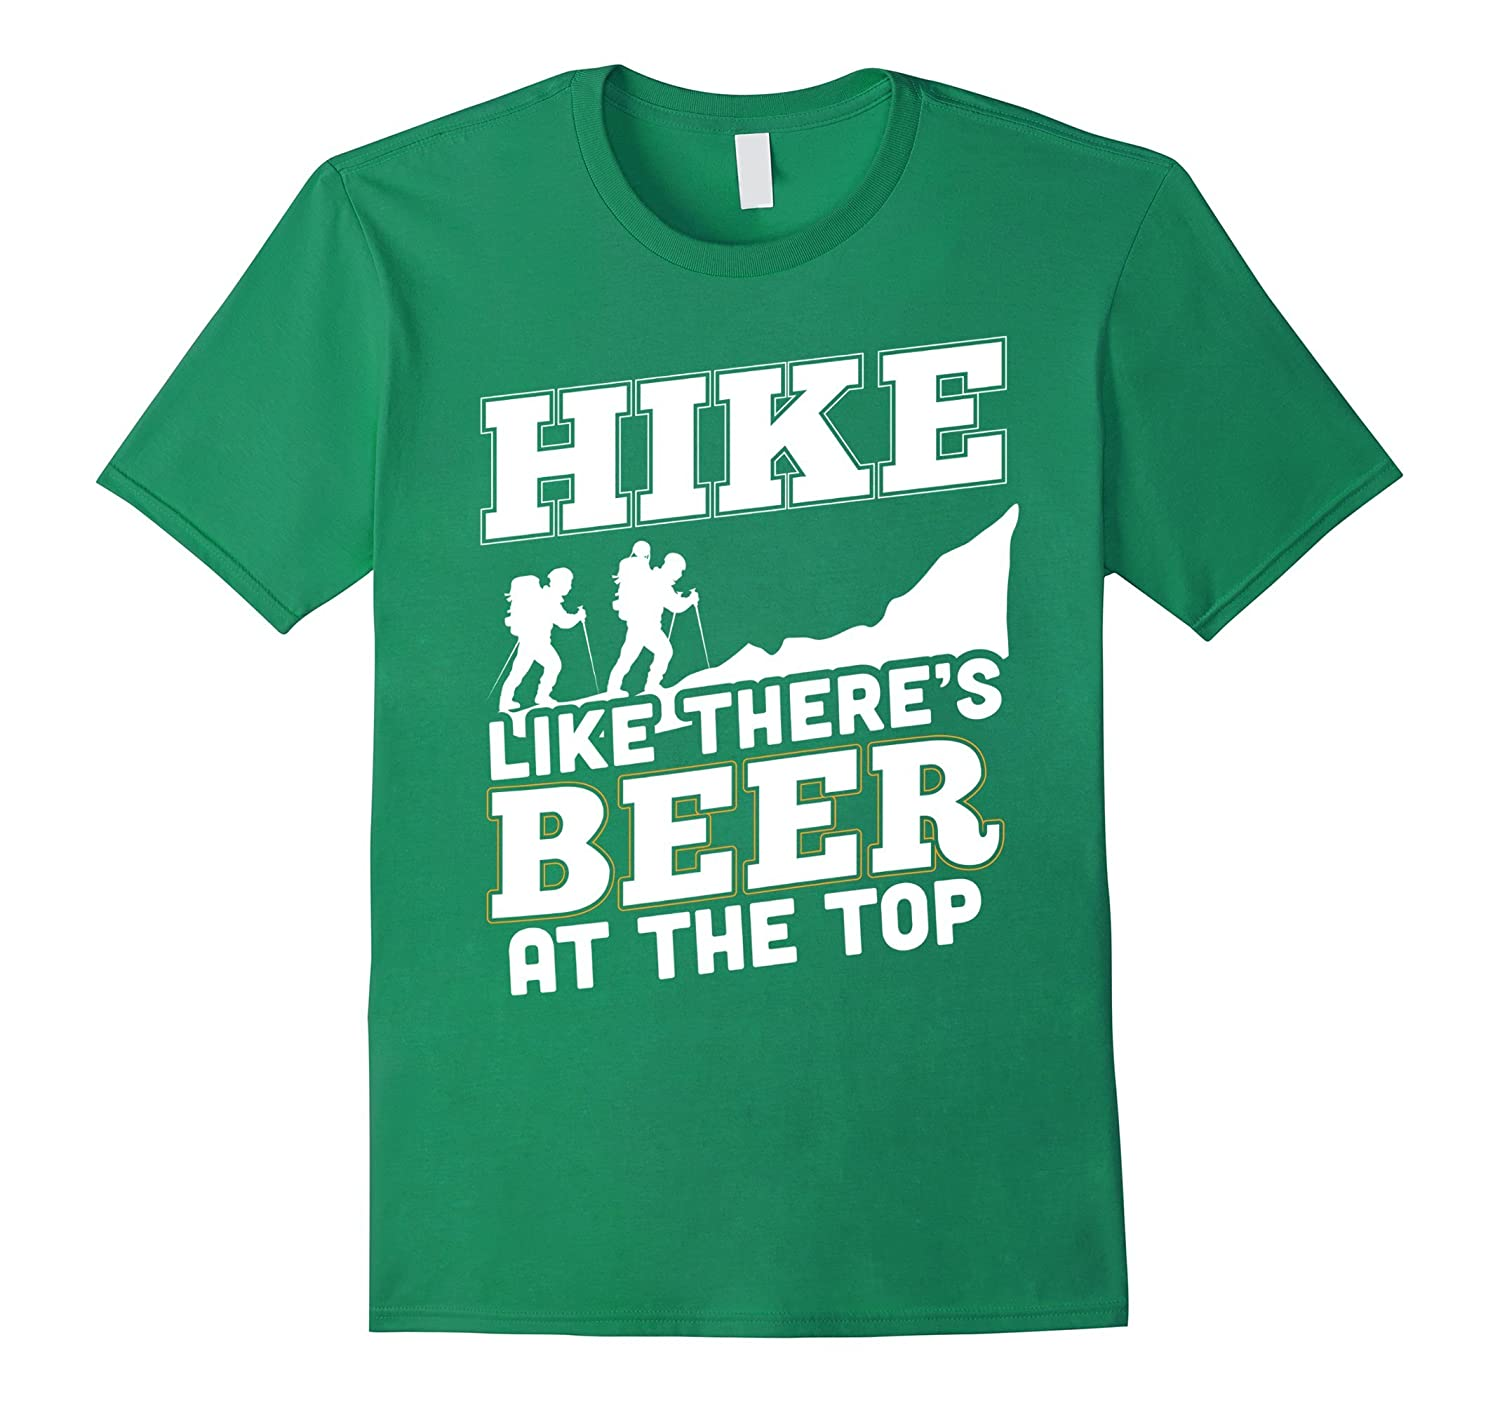 Hike Like There's Beer At The Top T-shirt For Hikers-FL